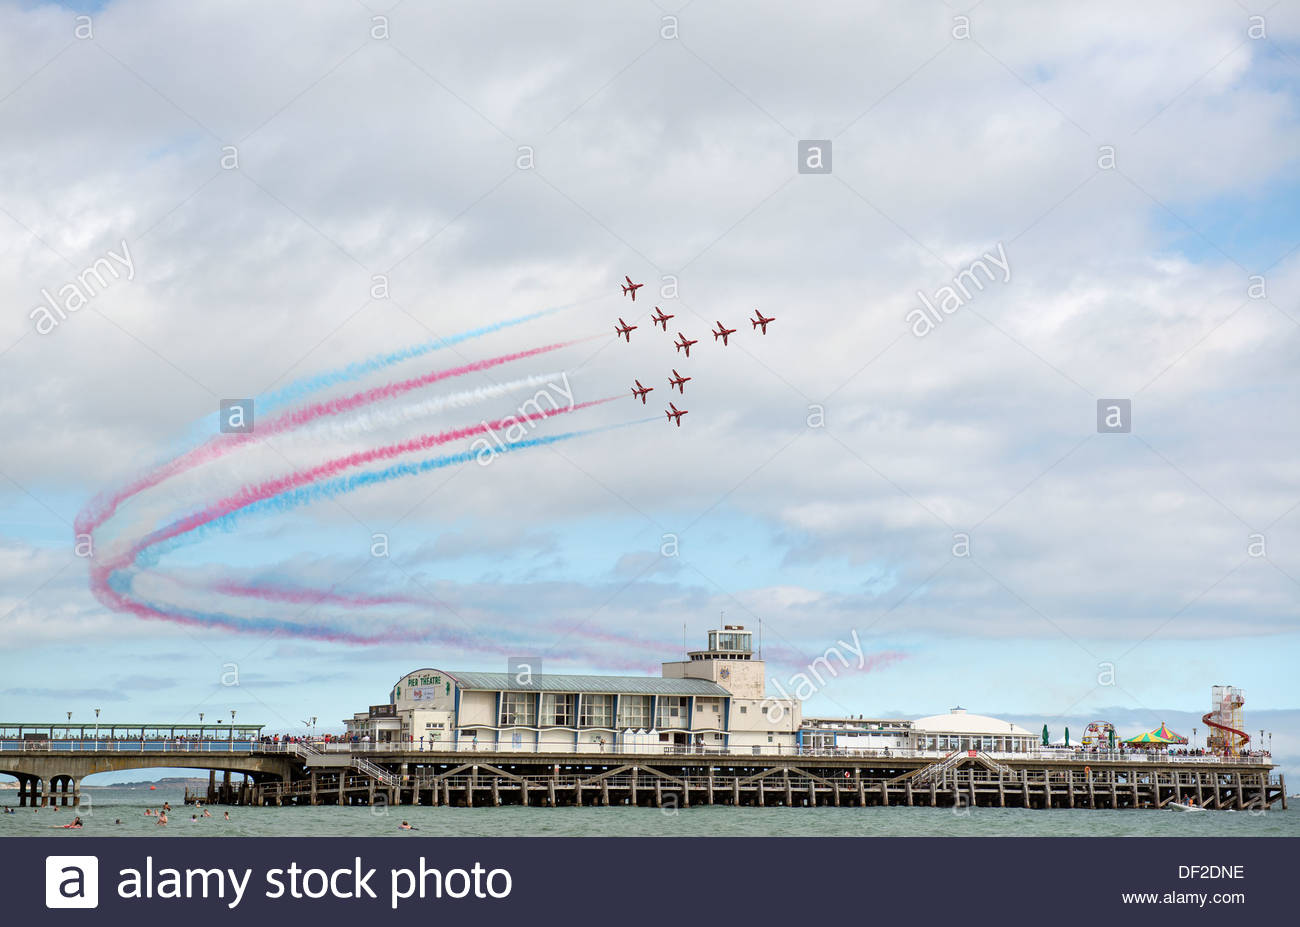 Bournemouth Air Festival Dorset UK August 30 2013 The Royal Air Force Aerobatic Team Red Arrows fly over the Bournemouth Pier. - Stock Image